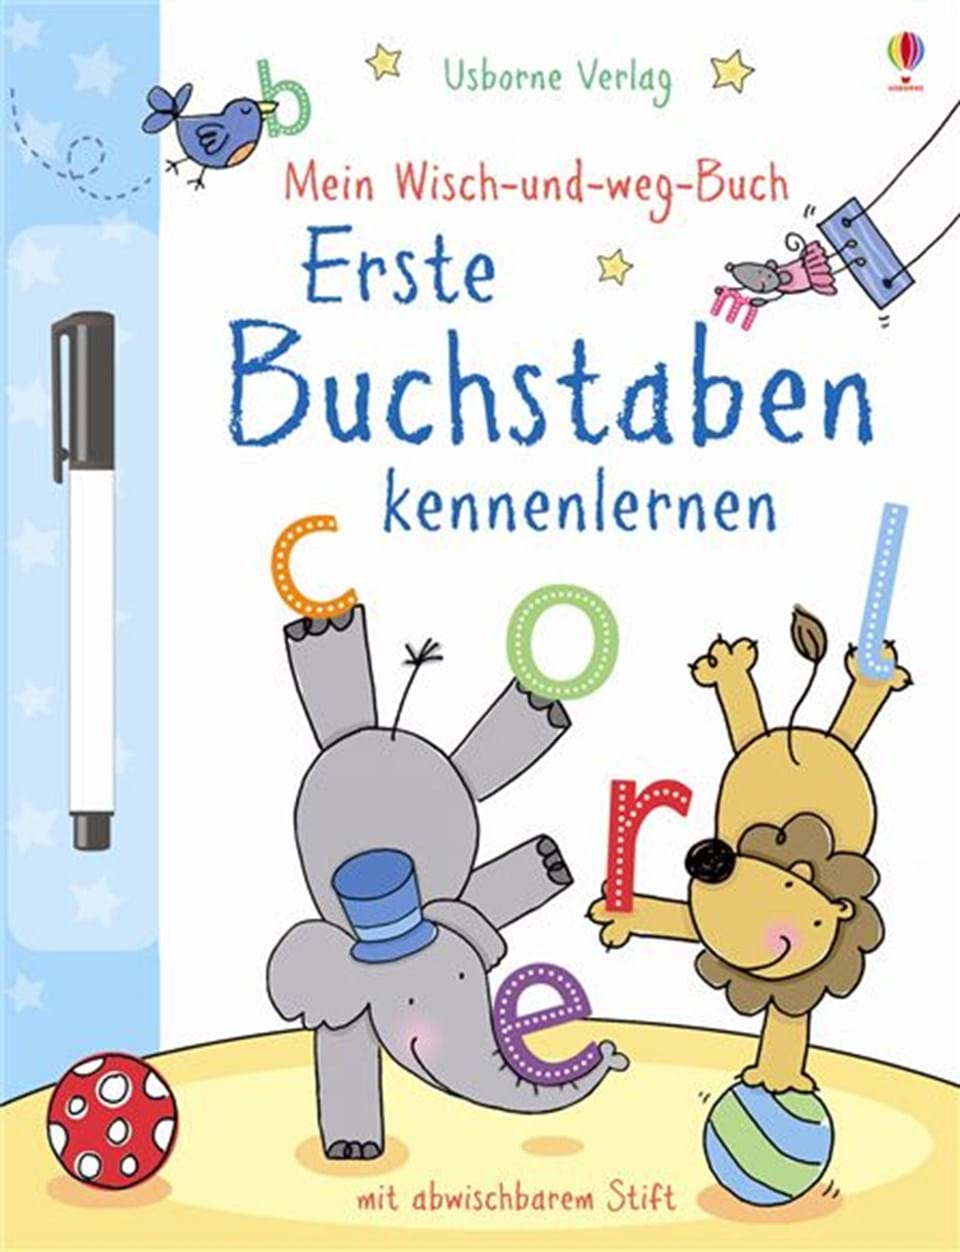 mein wisch und weg buch erste buchstaben kennenlernen kinderb cher von usborne. Black Bedroom Furniture Sets. Home Design Ideas